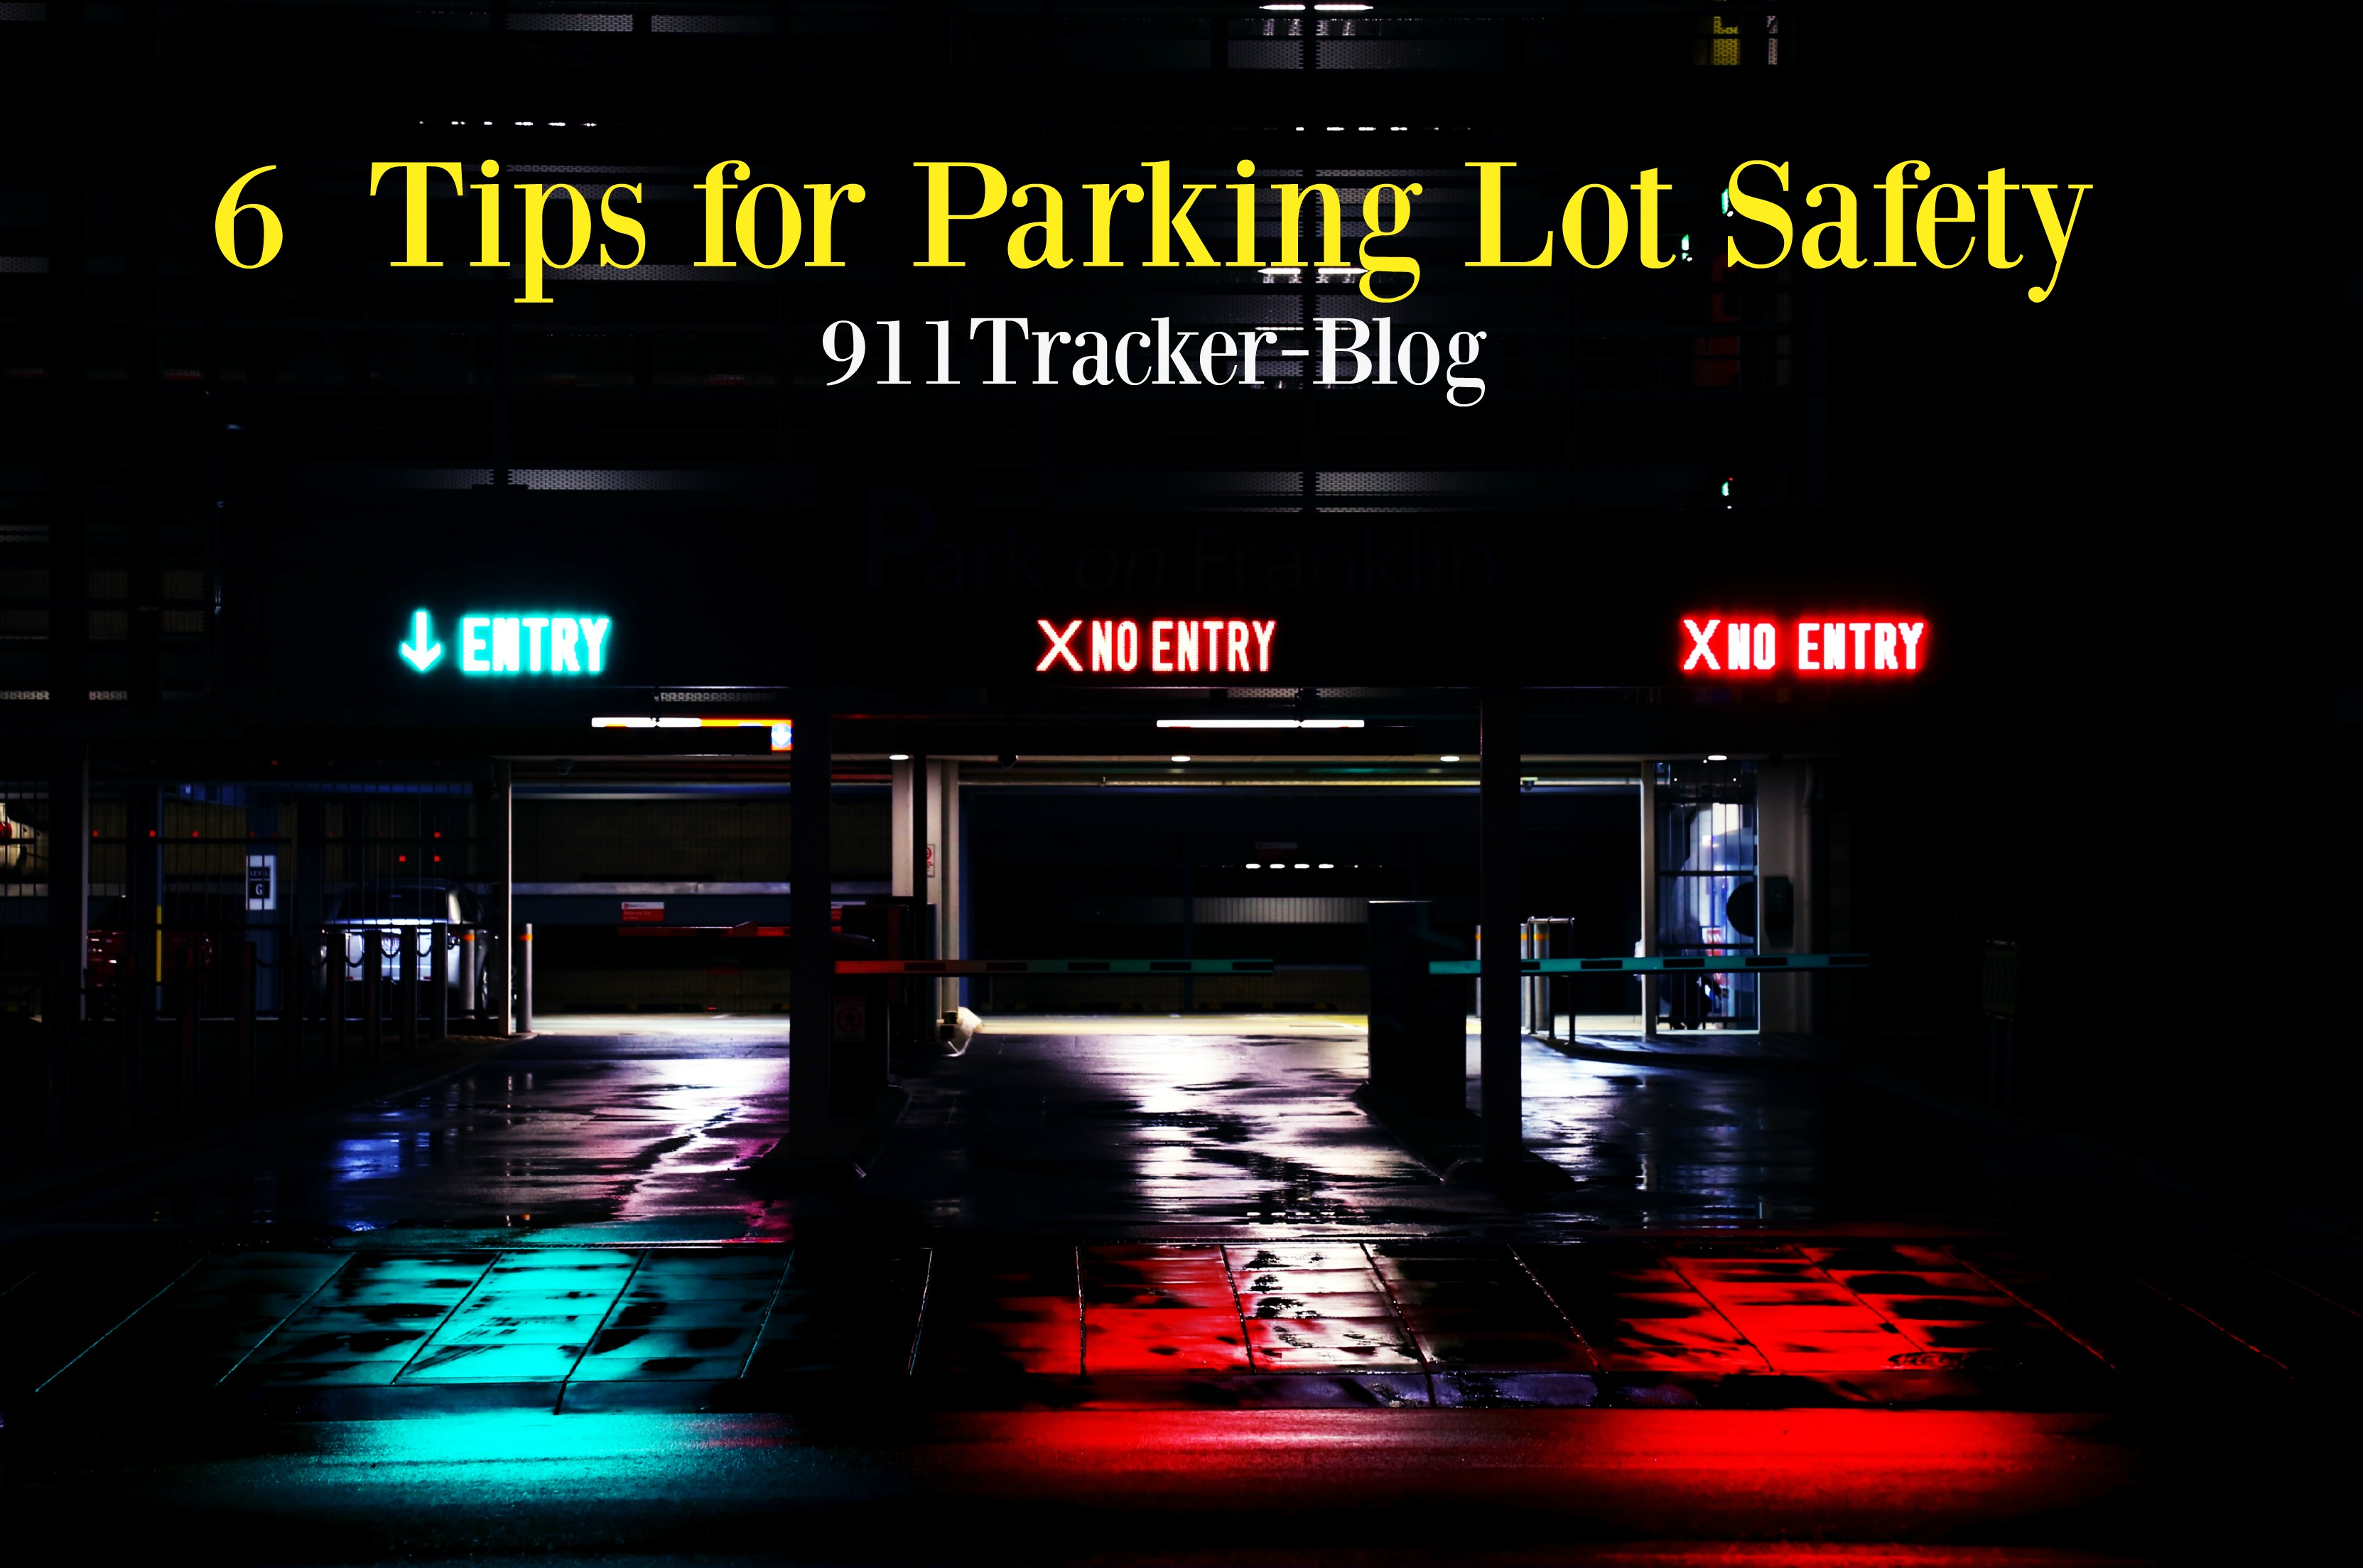 6 Tips For Staying Safe In The Parking Lot